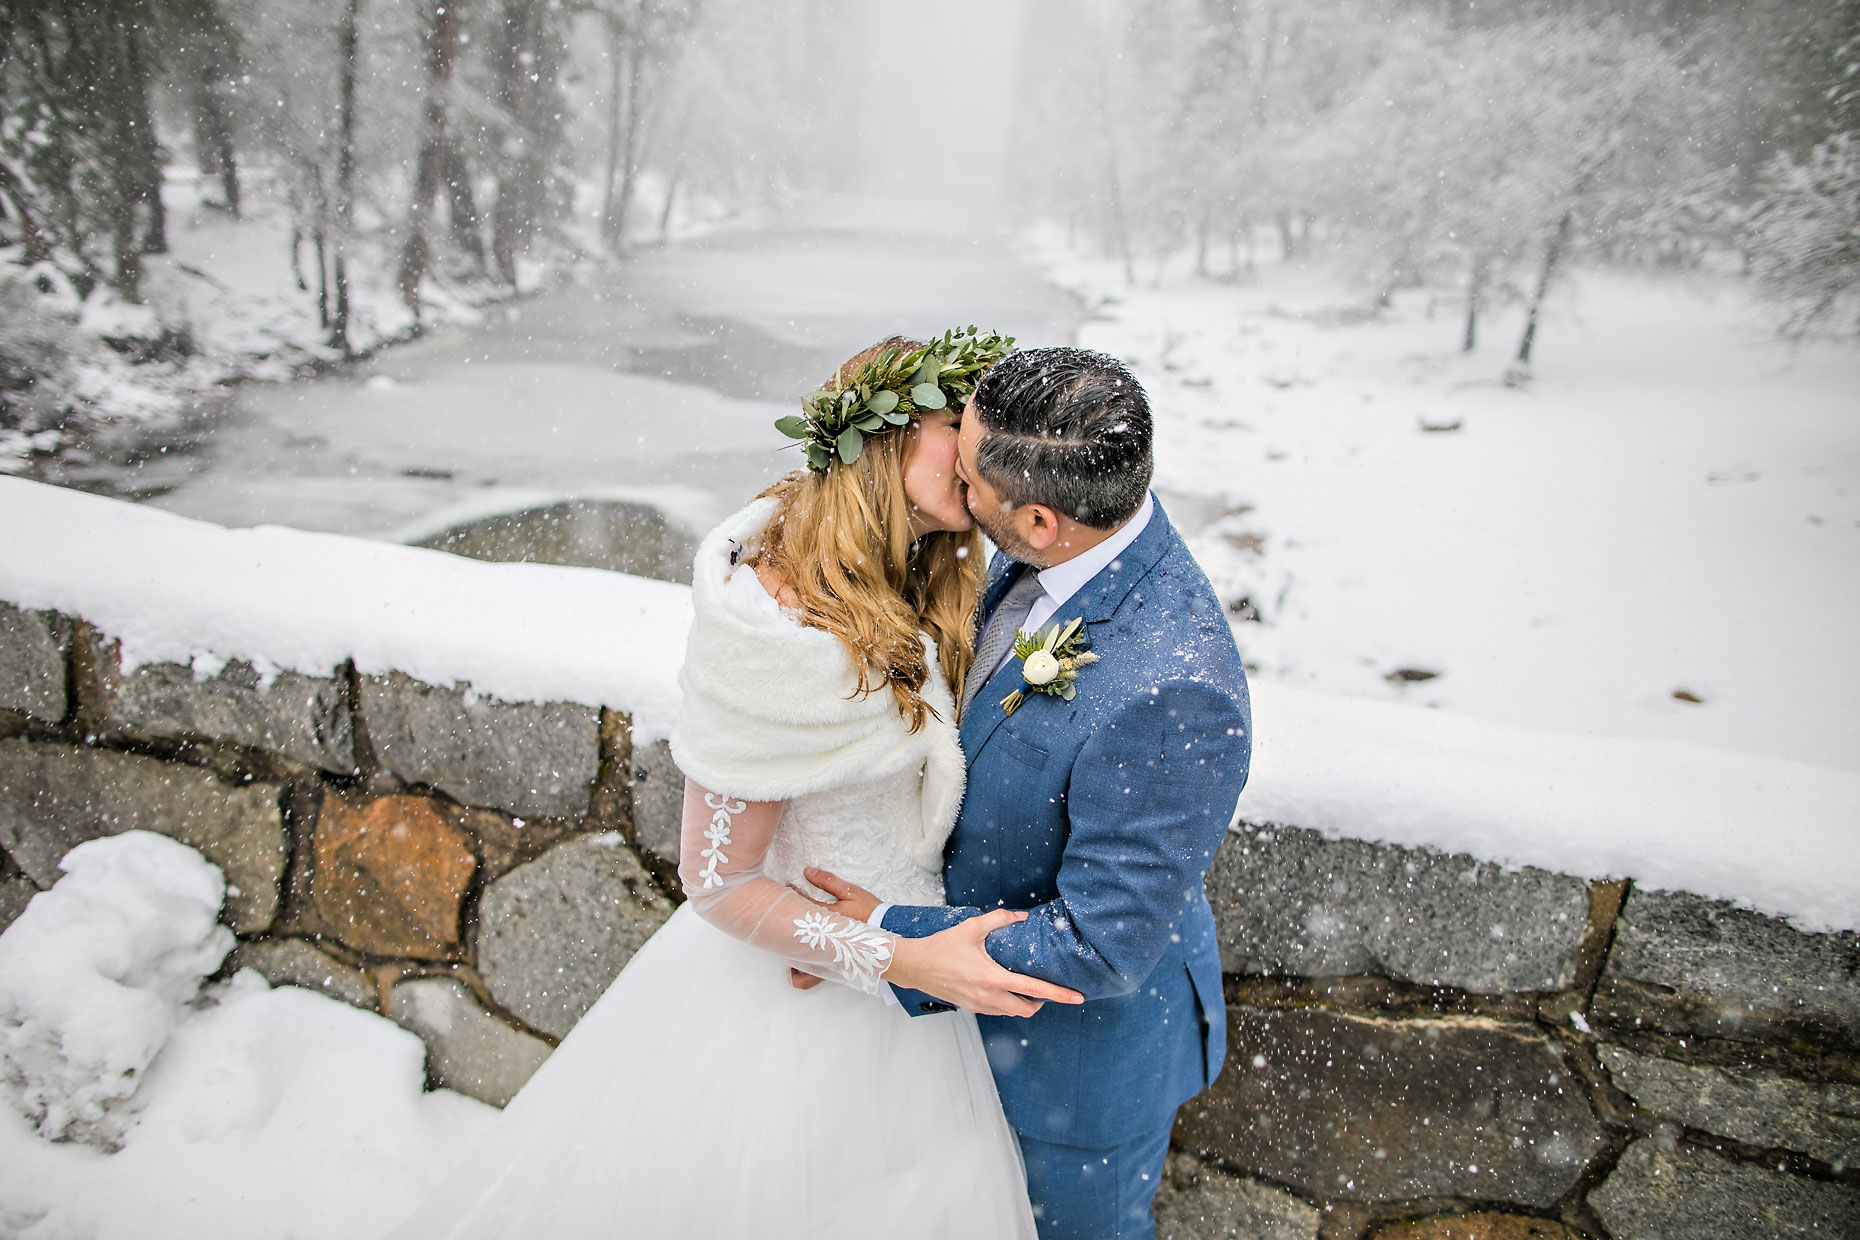 Winter elopement photography in Yosemite.